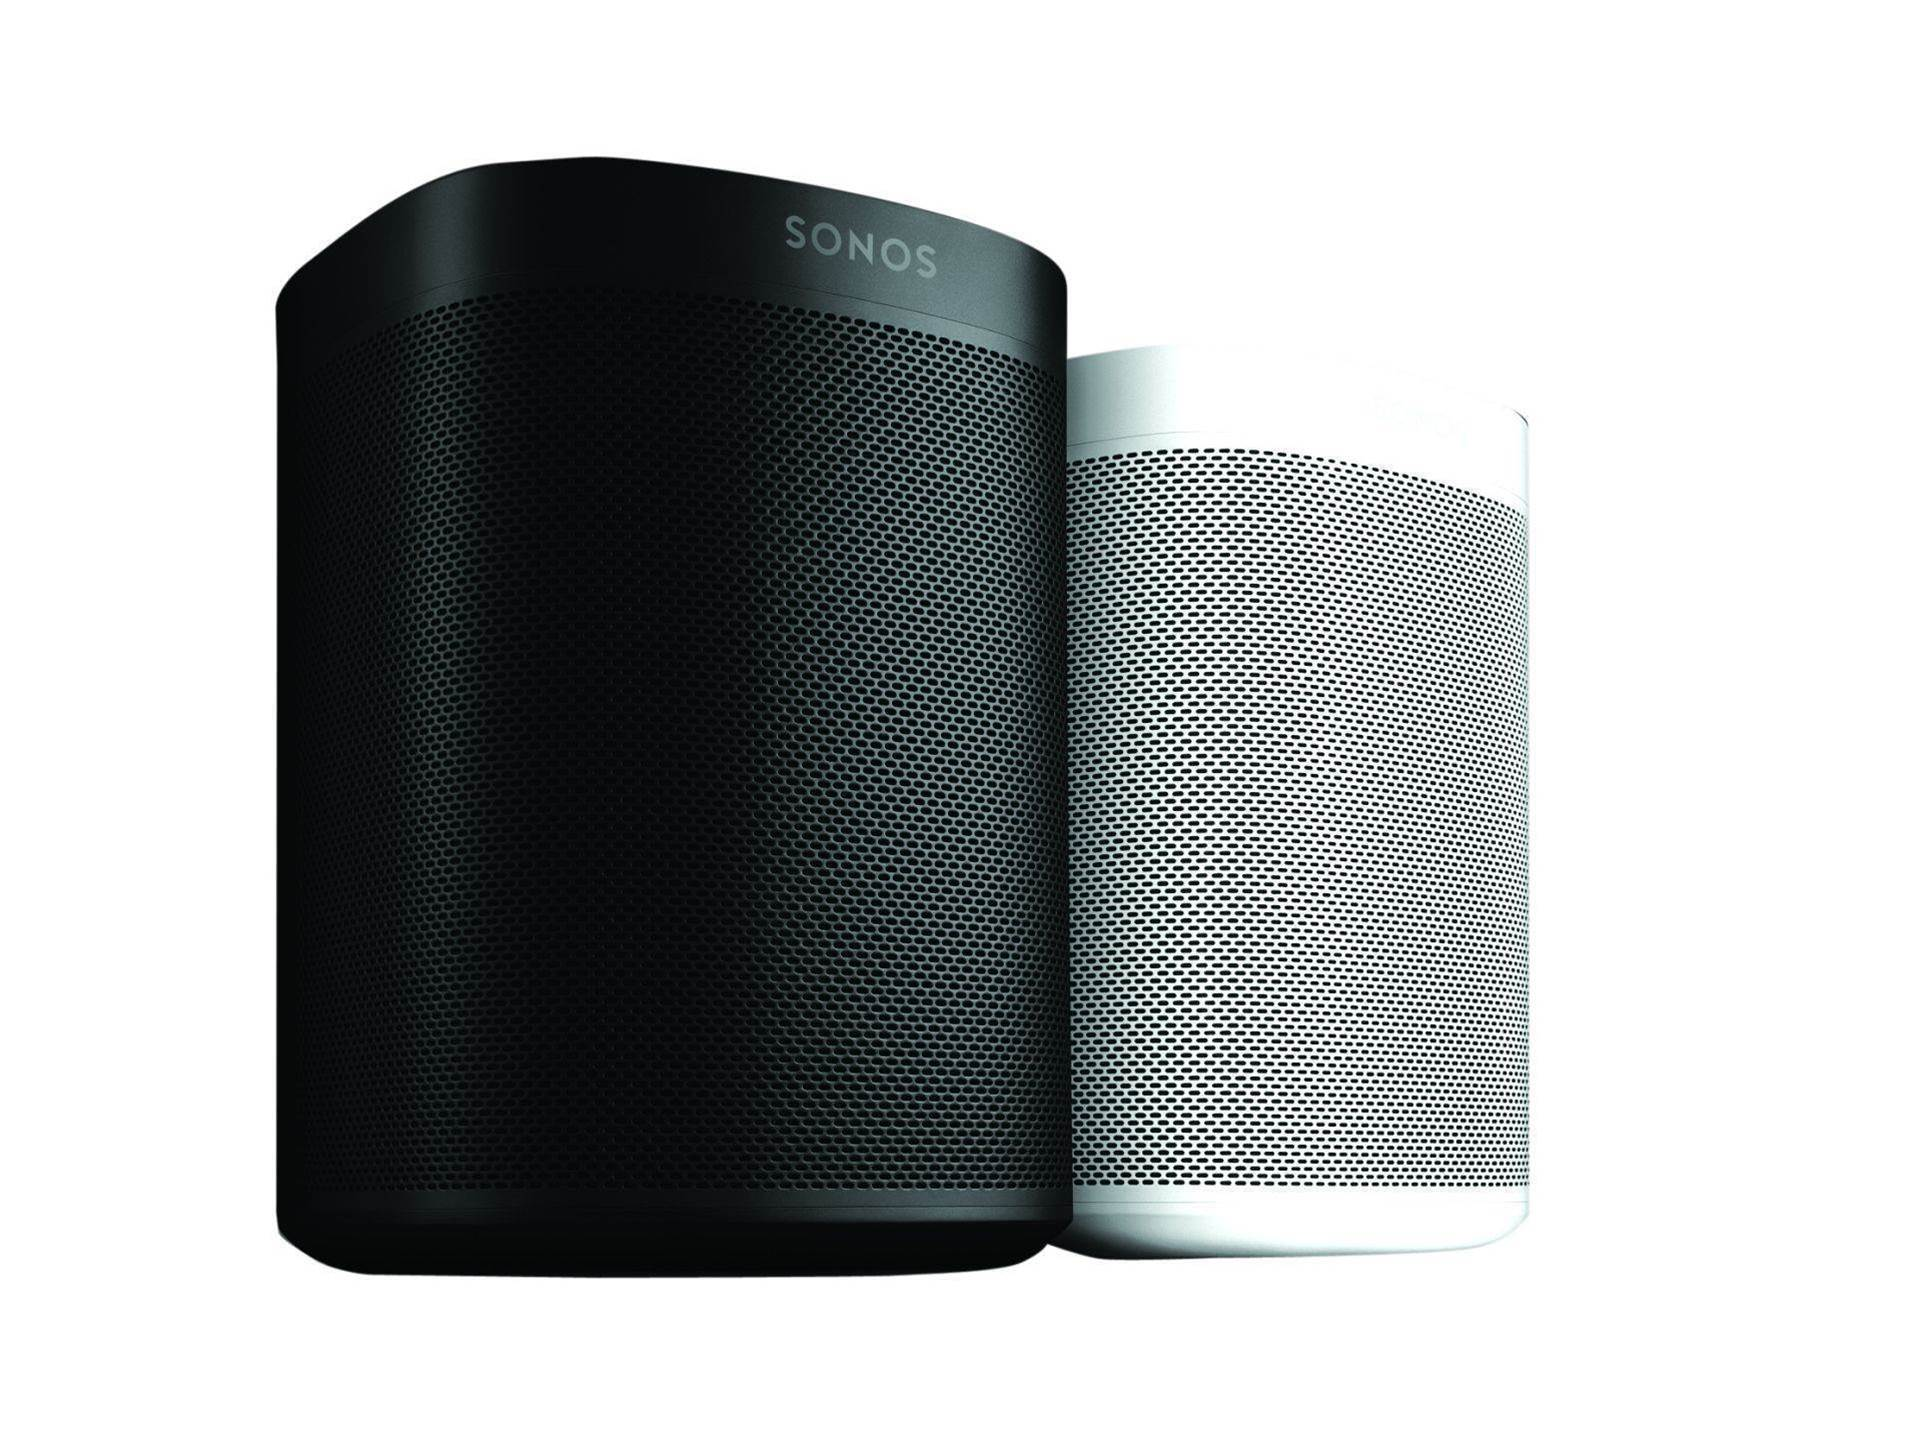 Review: Sonos One smart speaker